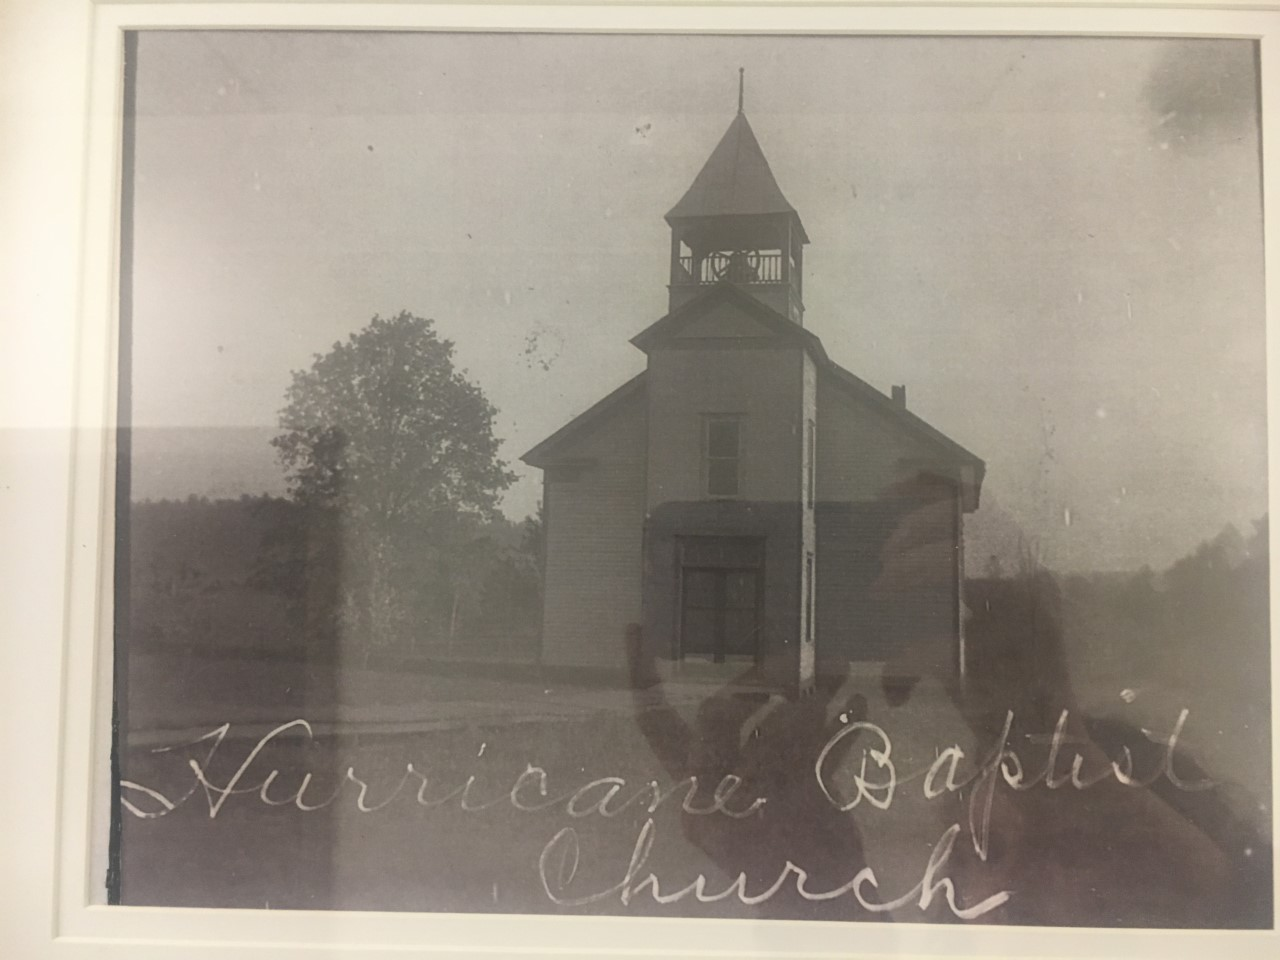 The church at its old location